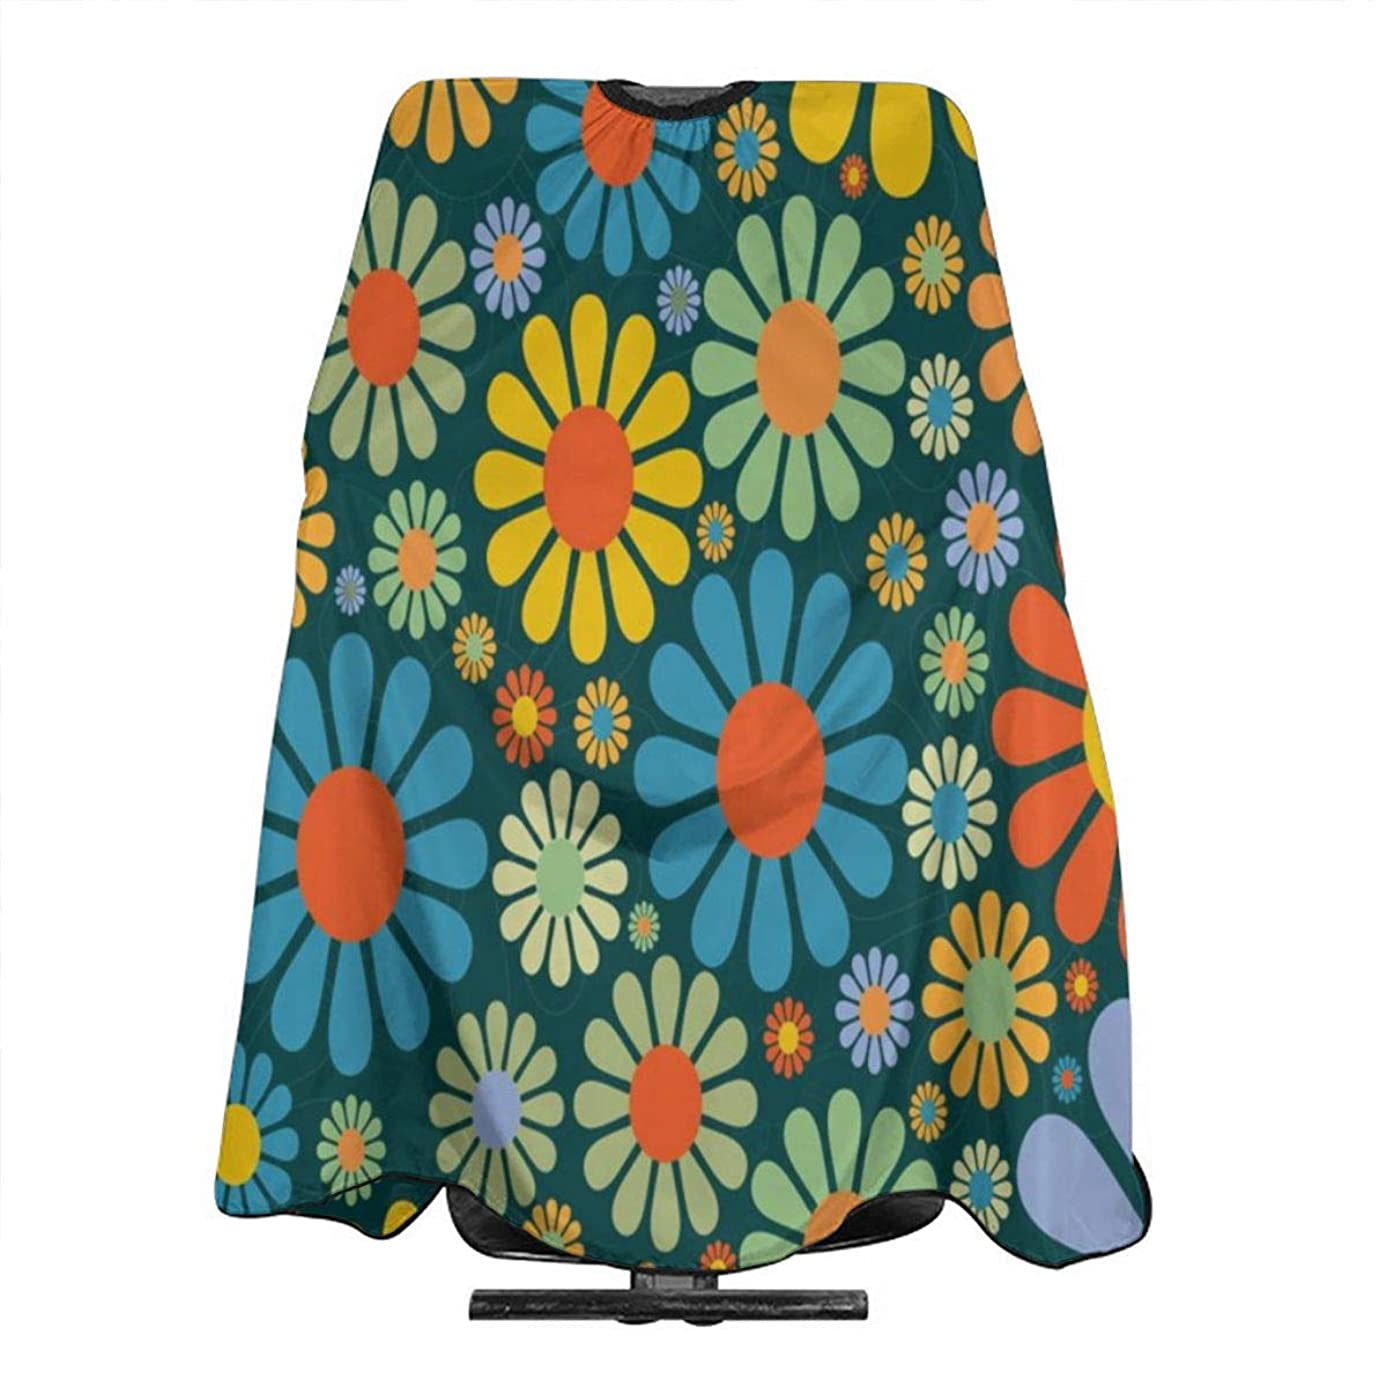 Flower Power Party Barber Salon Cape Apron for Styling Hair Cut Hairdresser Profession/Home Barbershop Supplies Bib Kit for Adult/Women/Men 55